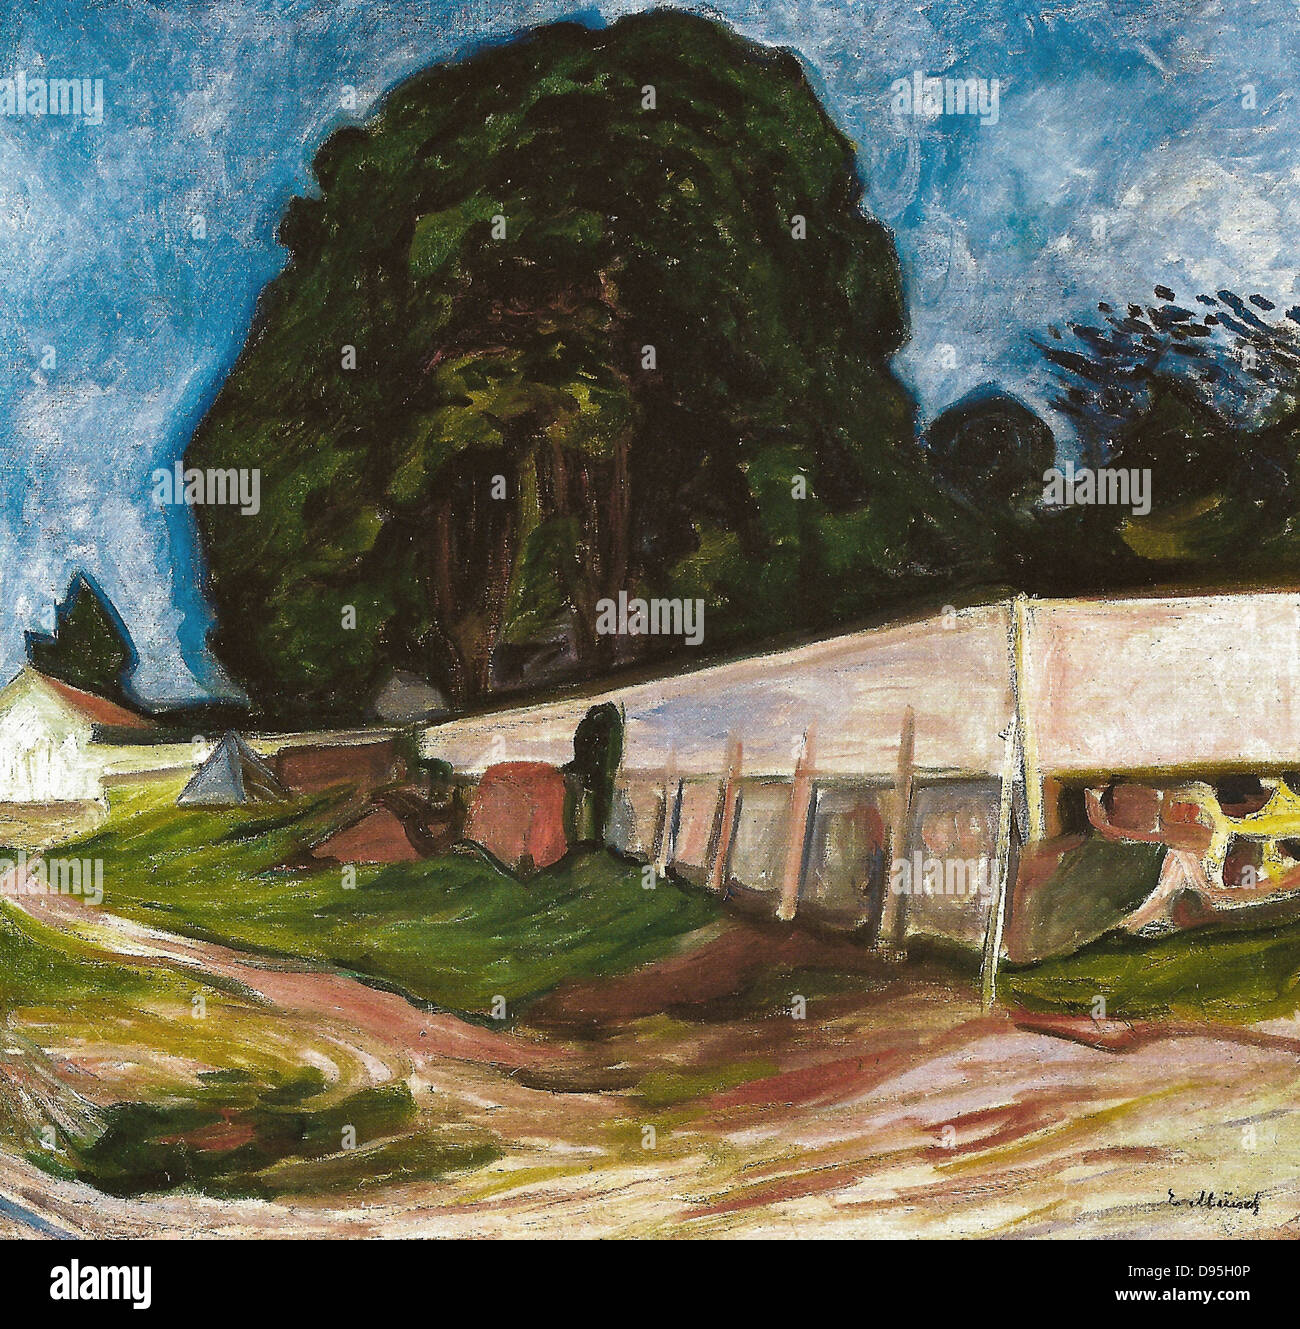 Edvard Munch Summer Night at Aasgaardstrand 1904 XIX th century Orsay Museum - France - Stock Image